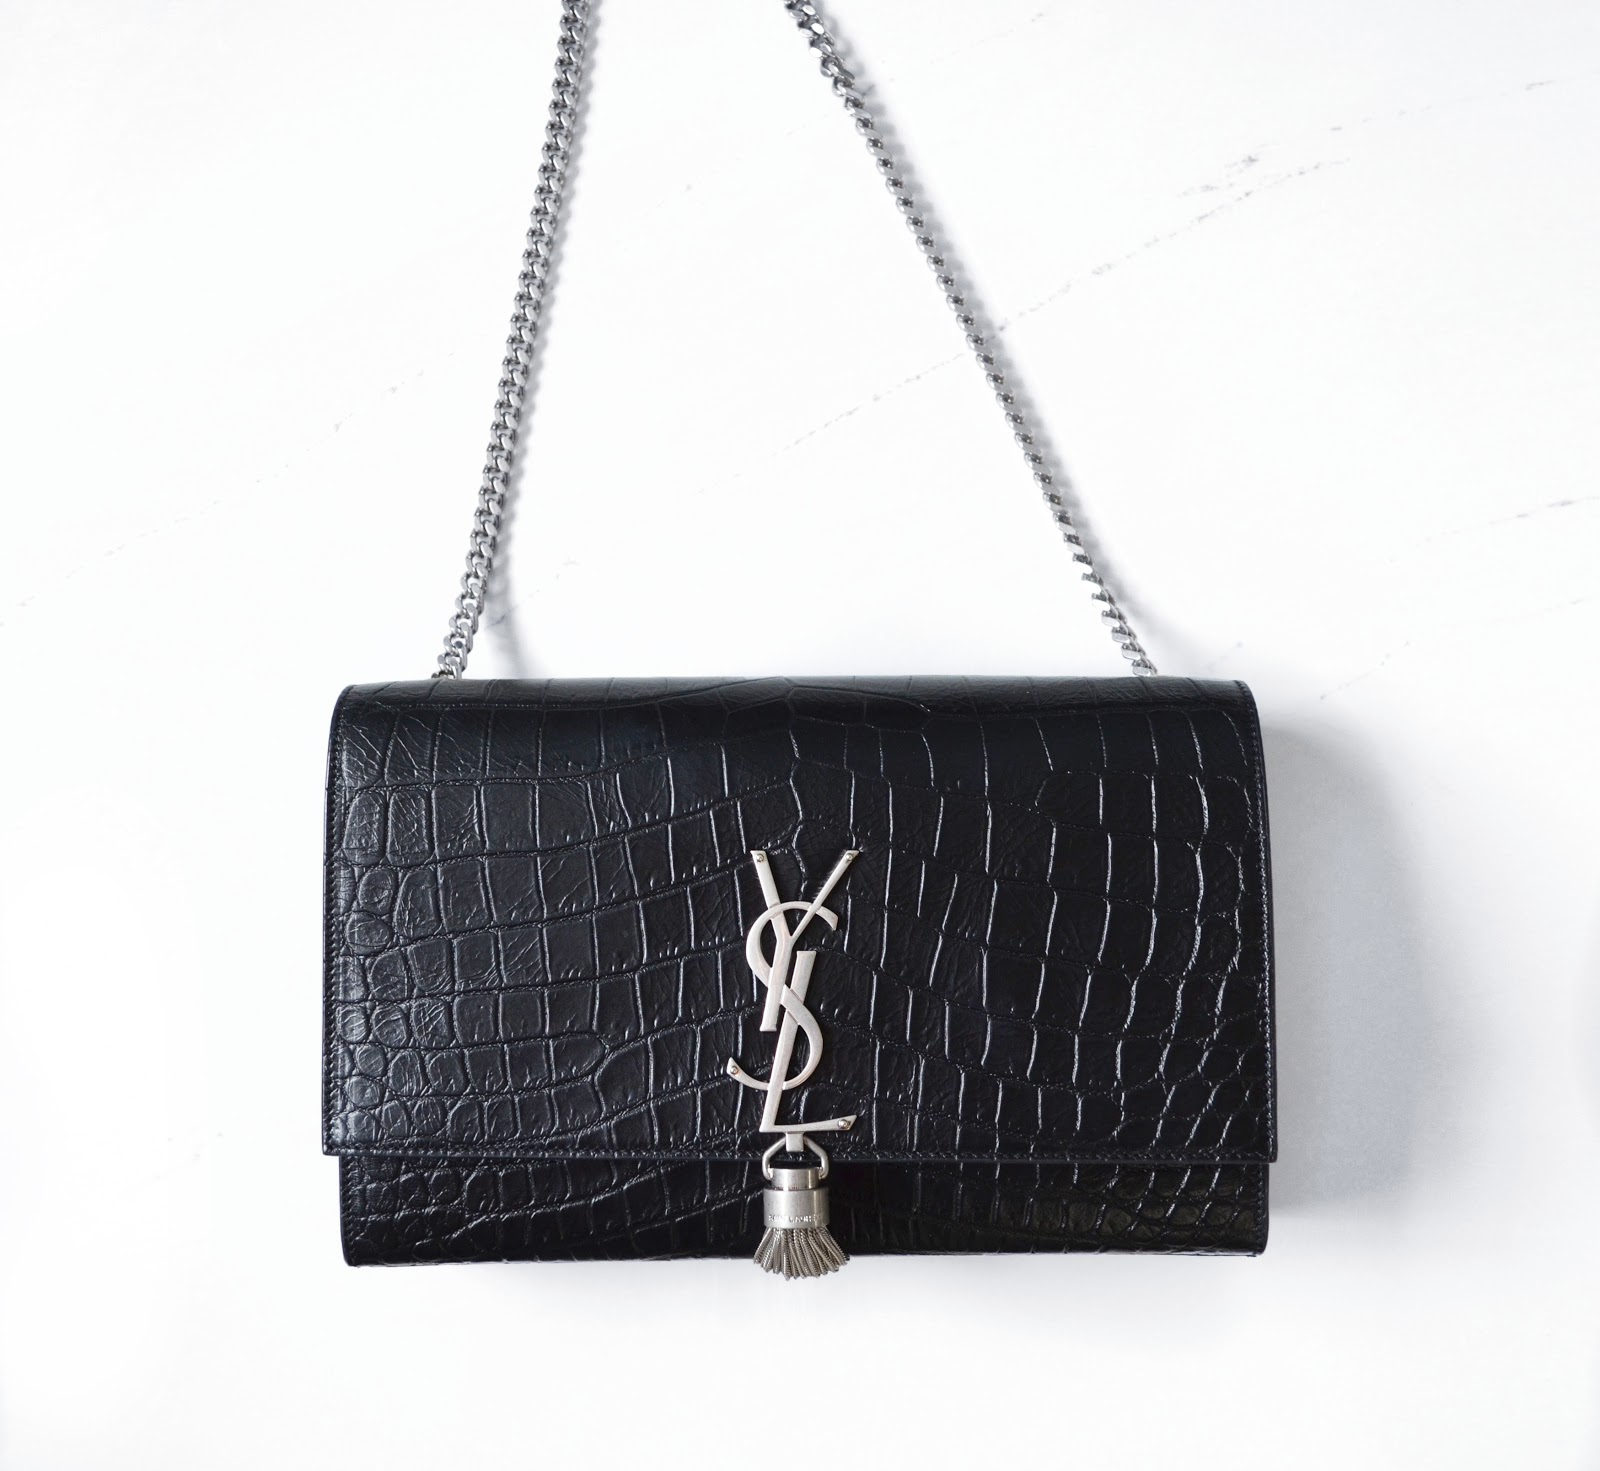 de3b8f1bc Arabella: Review - A New Addition: Saint Laurent Monogram Tassel Satchel